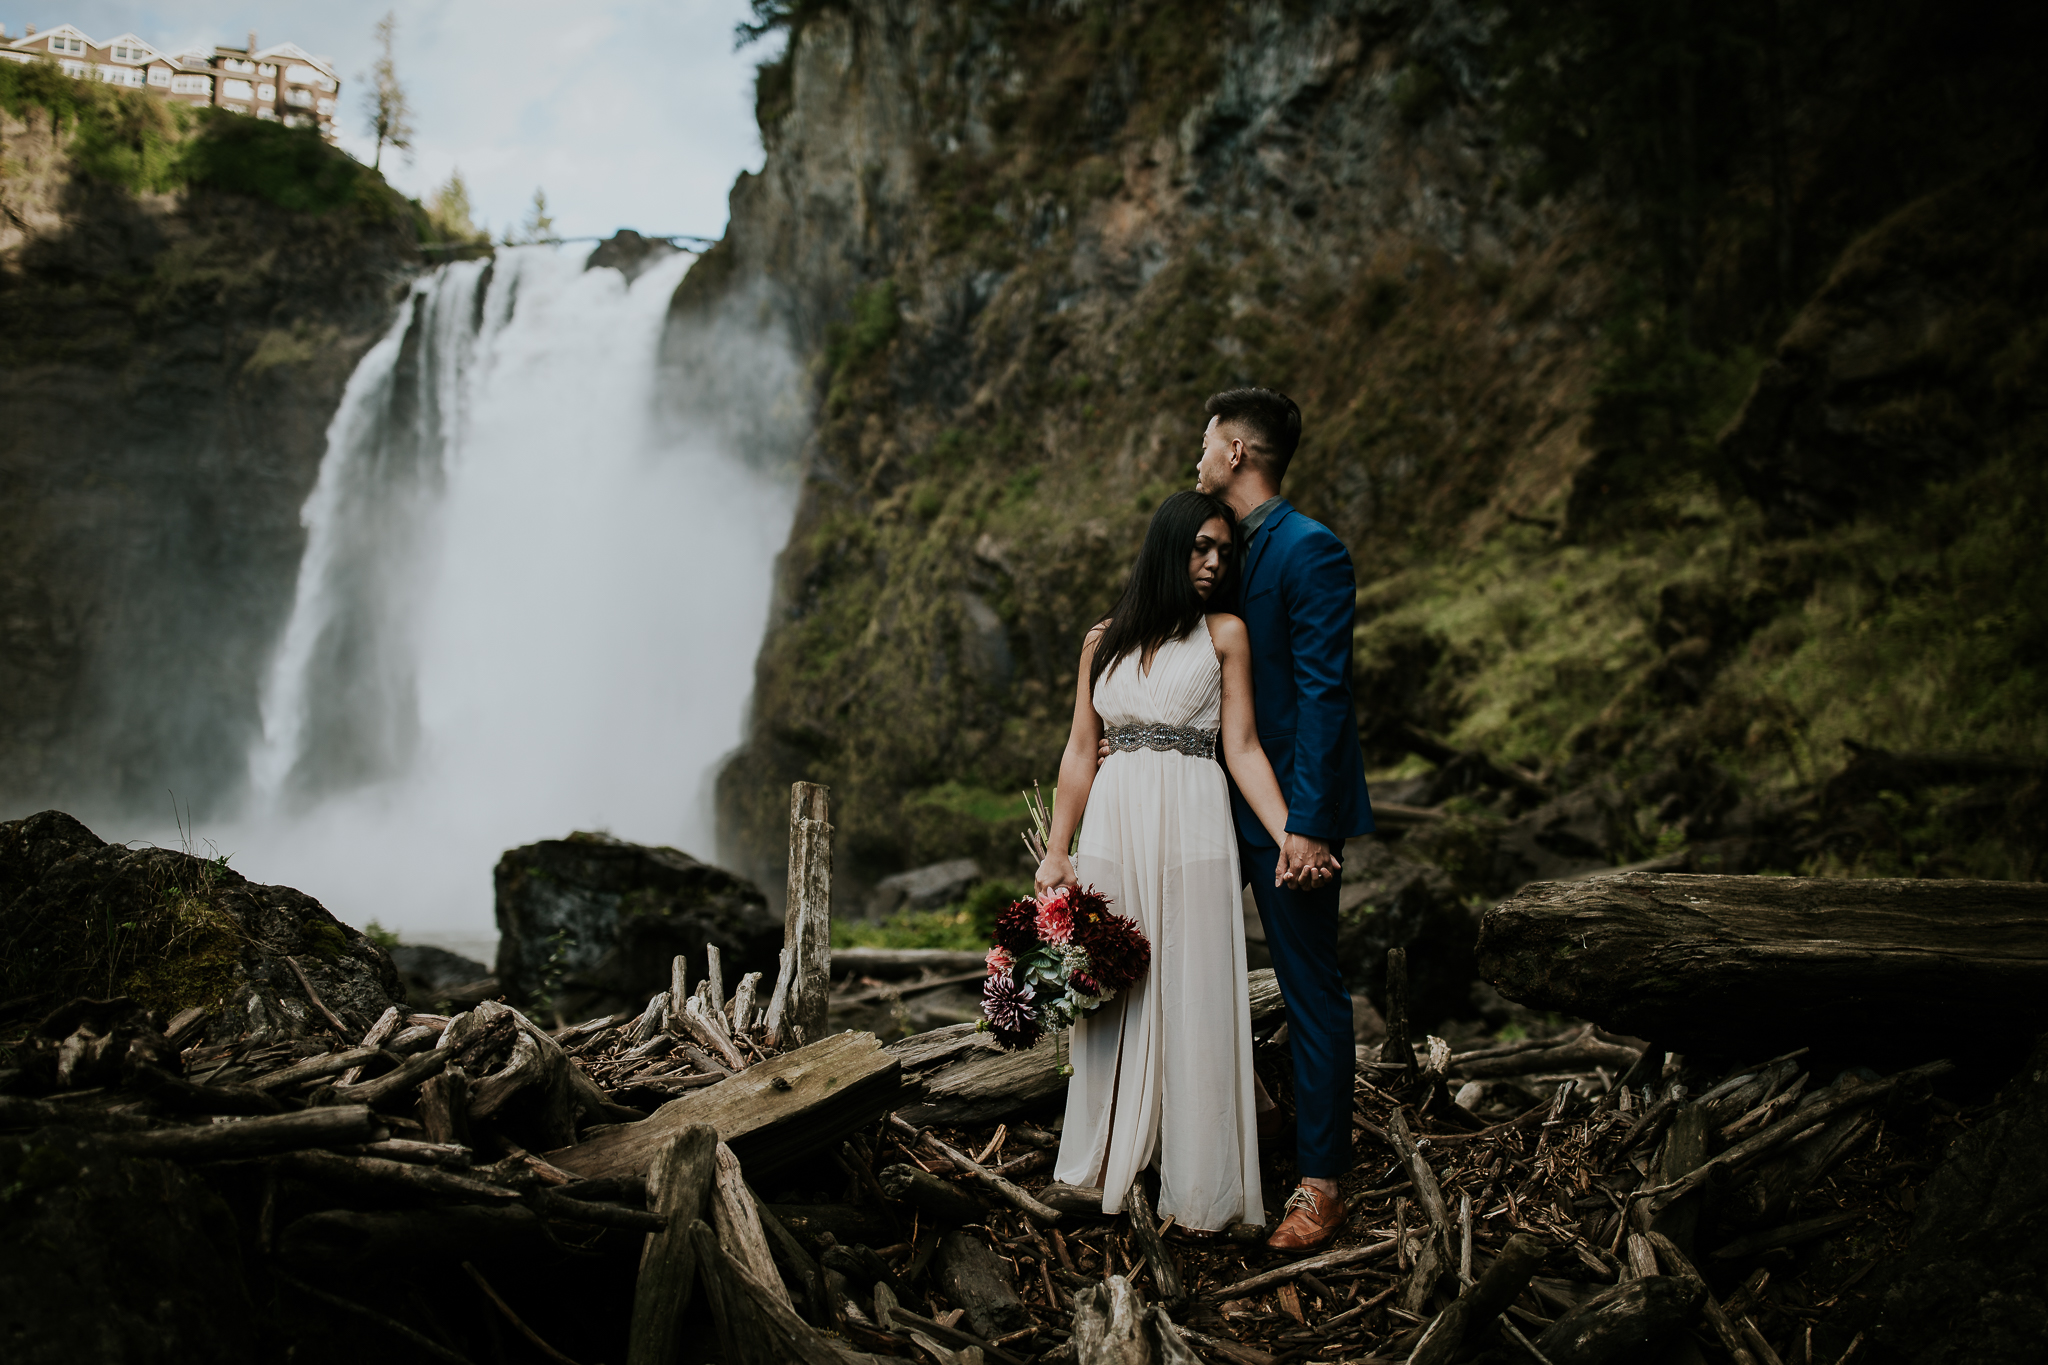 Bride and groom holding hands among logs in front of Snoqualmie falls